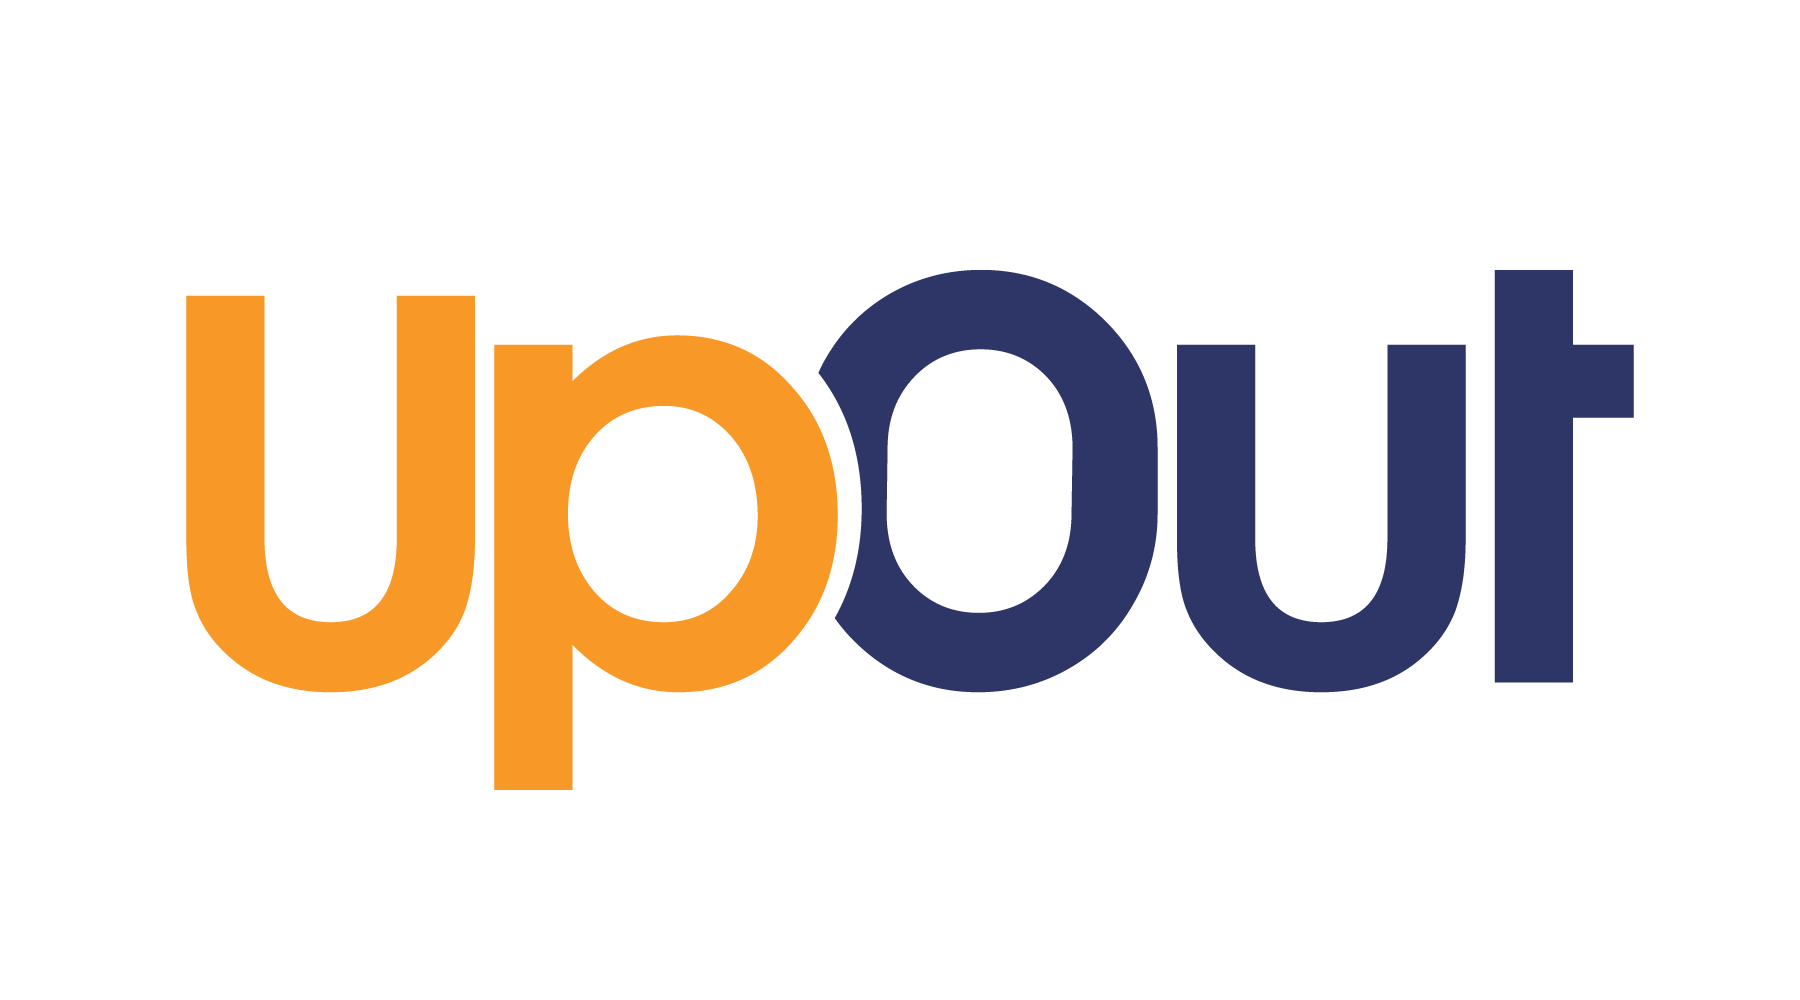 UpOutLogo_Transparent.png